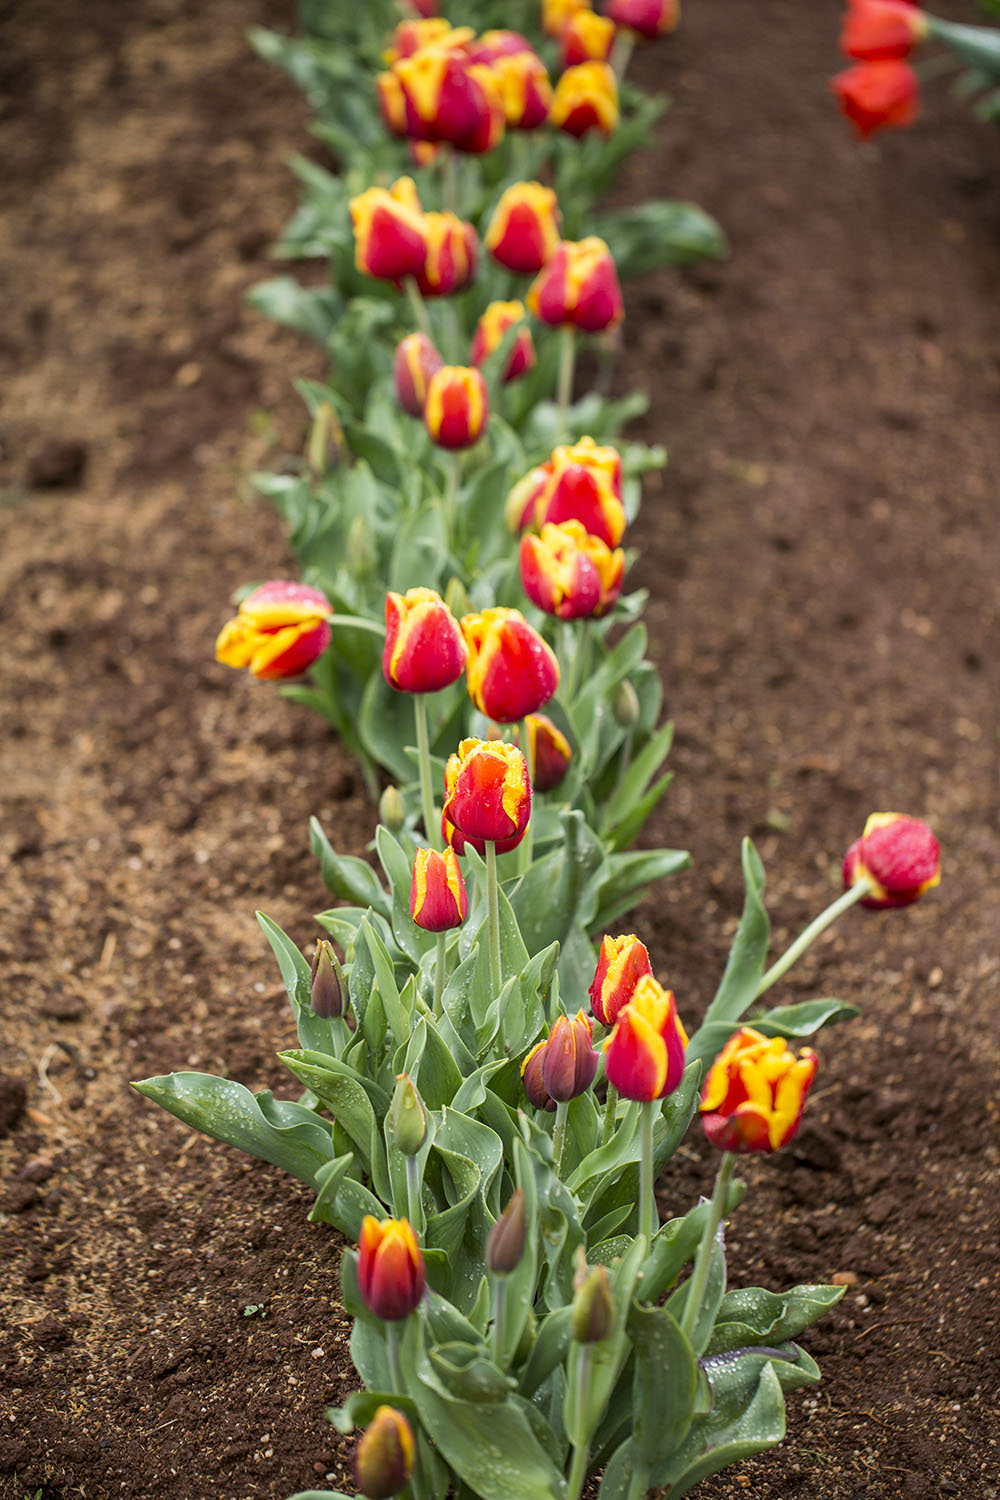 Tulips Growing In The Field